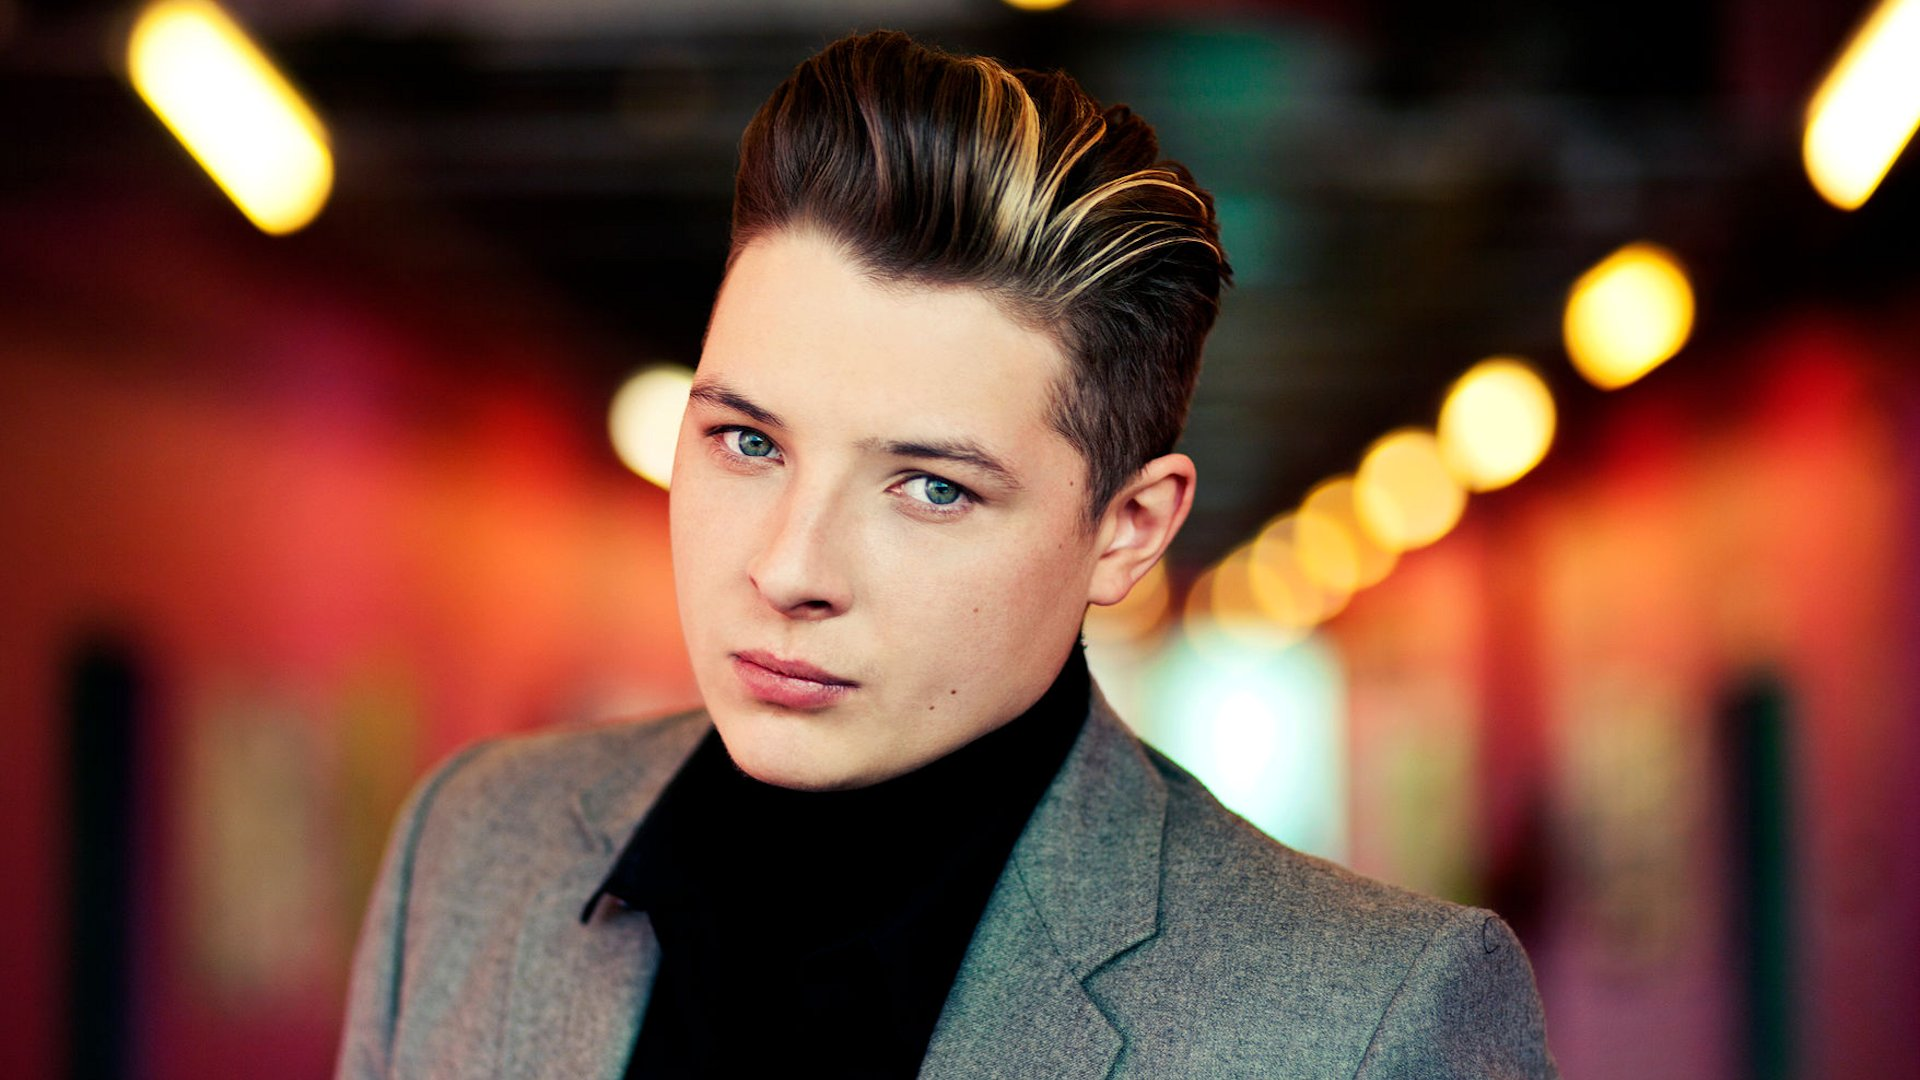 Come And Get It av John Newman